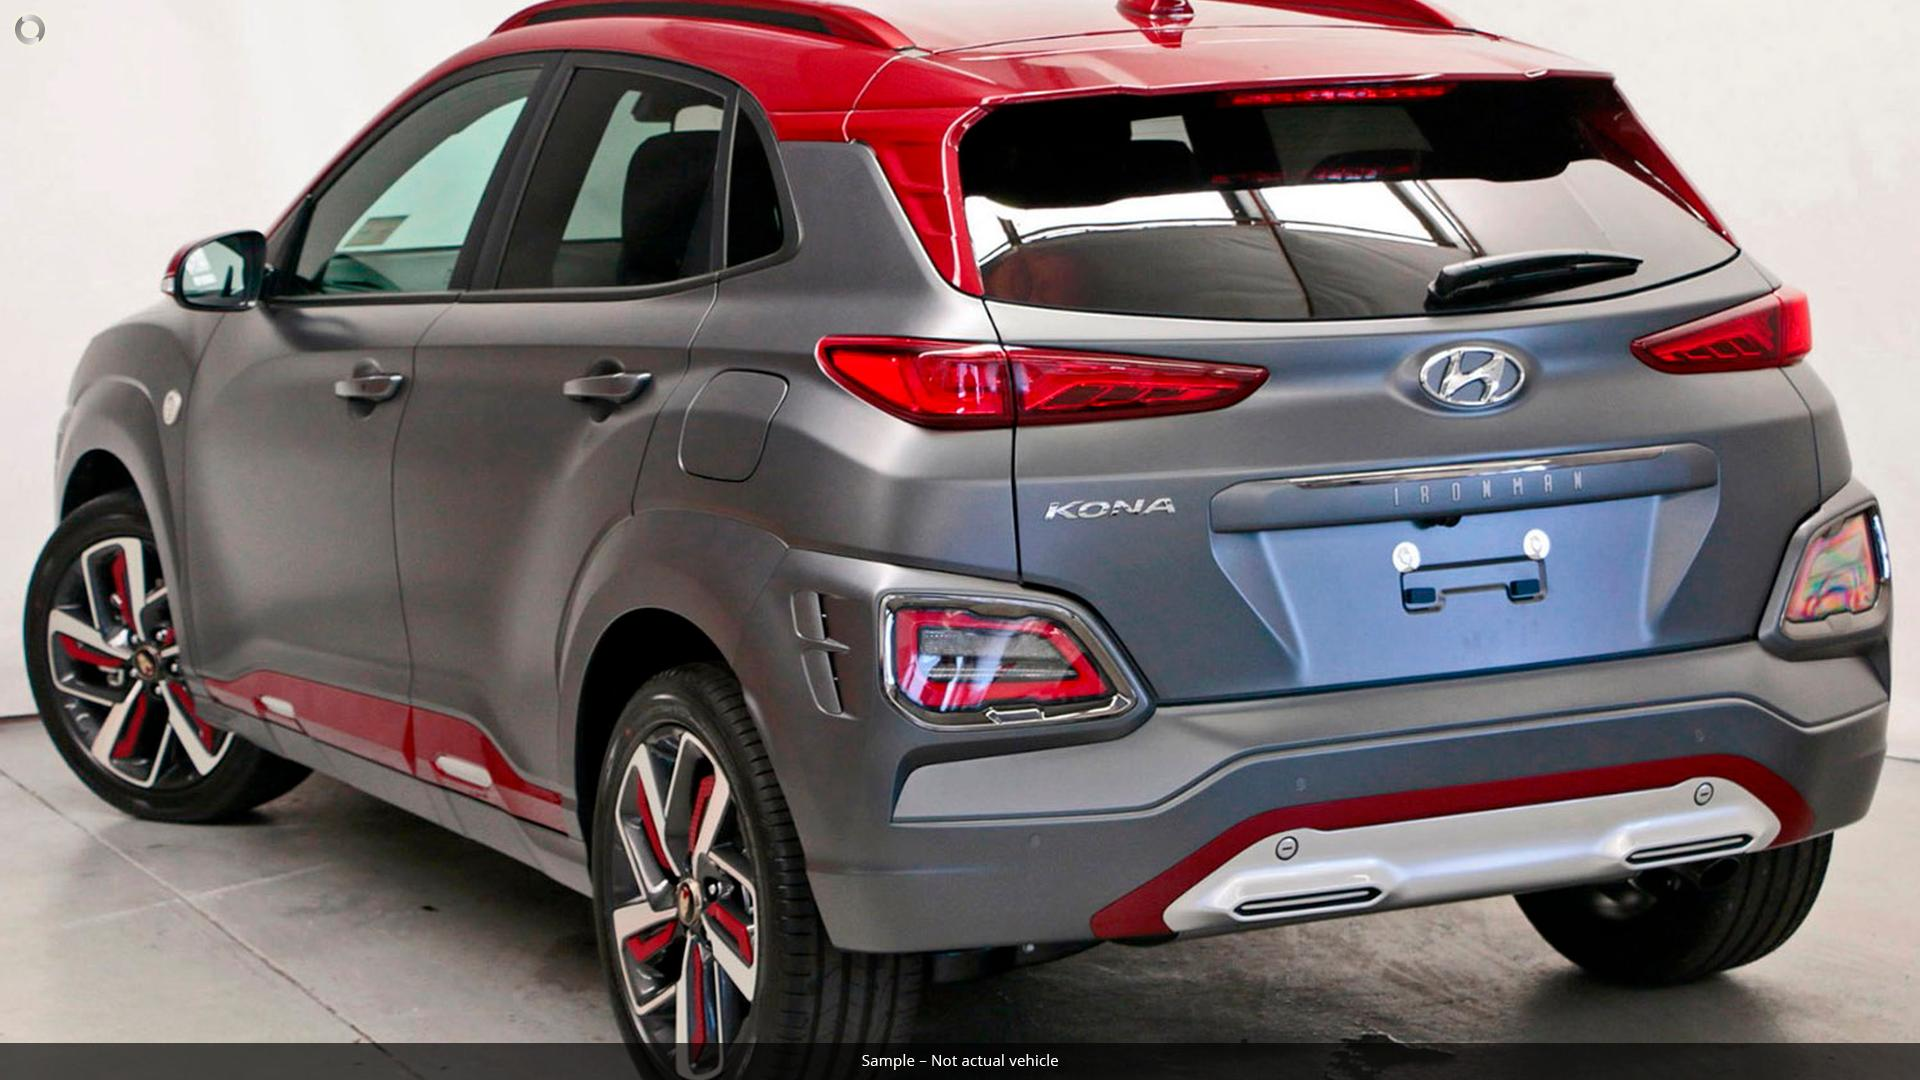 2019 Hyundai Kona Iron Man Edition OS.2